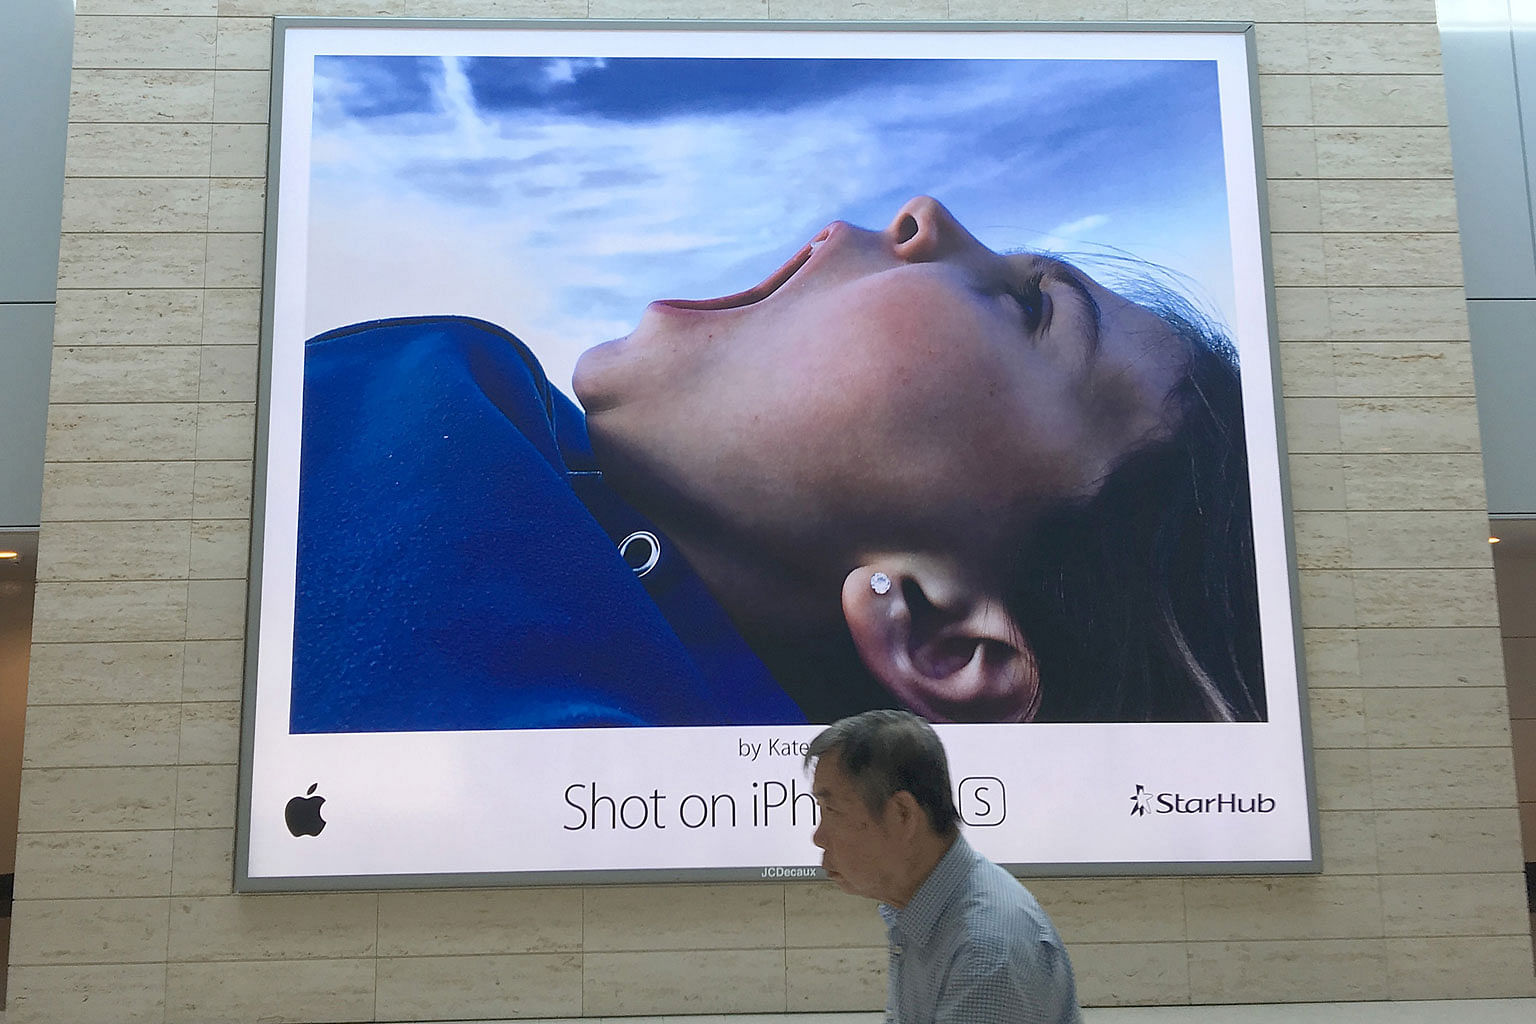 A billboard of a photo shot on an iPhone 6. While smartphones are hard to beat on convenience, cameras have the edge in photo quality.